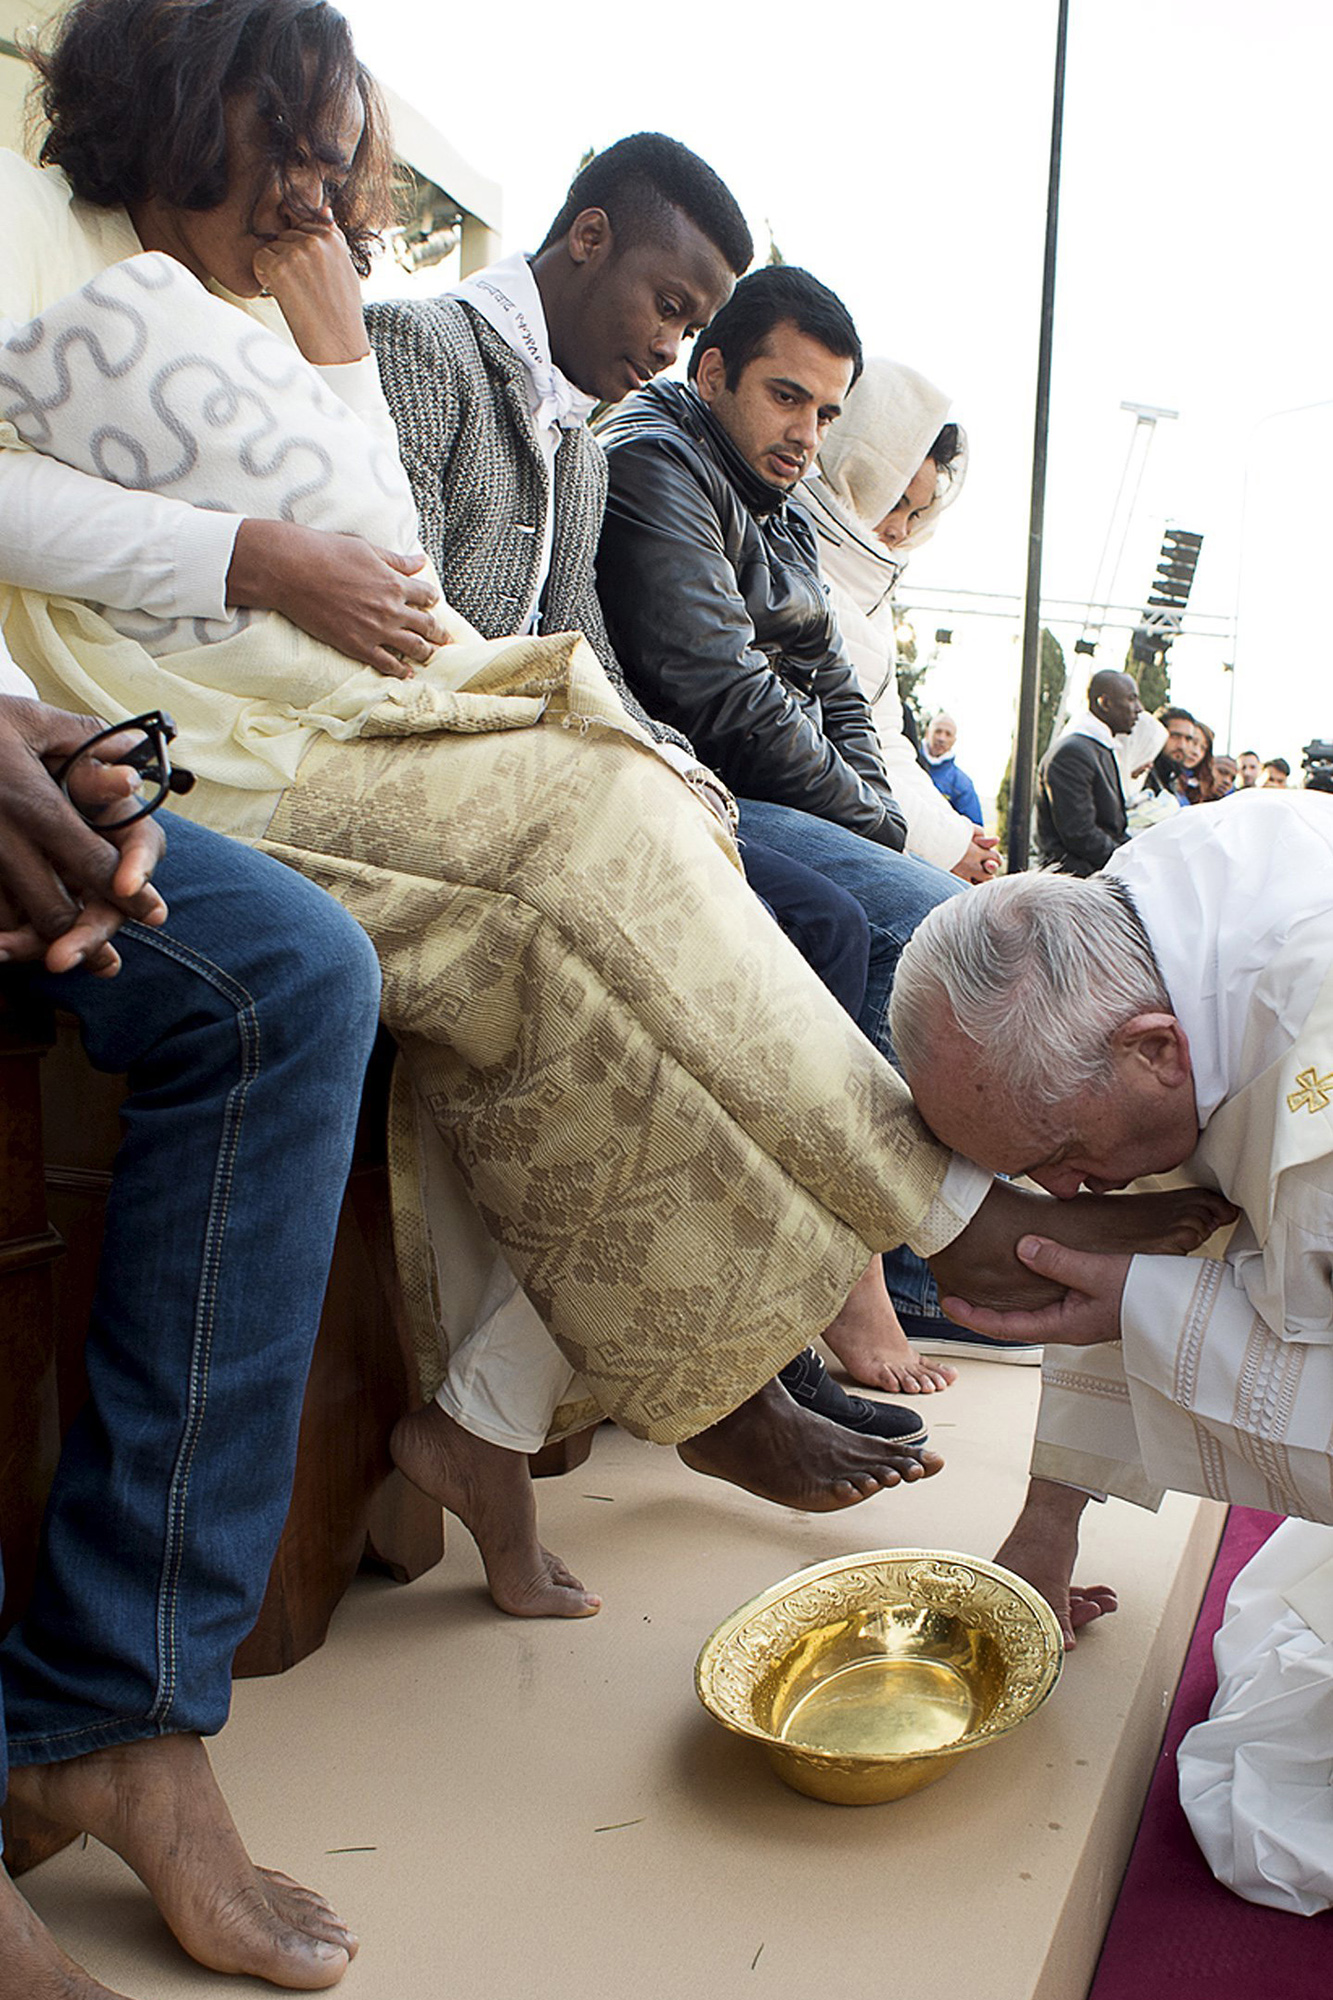 Pope Francis kisses the foot of a refugee during the foot-washing ritual at the Castelnuovo di Porto refugees center near Rome, Italy on March 24, 2016.